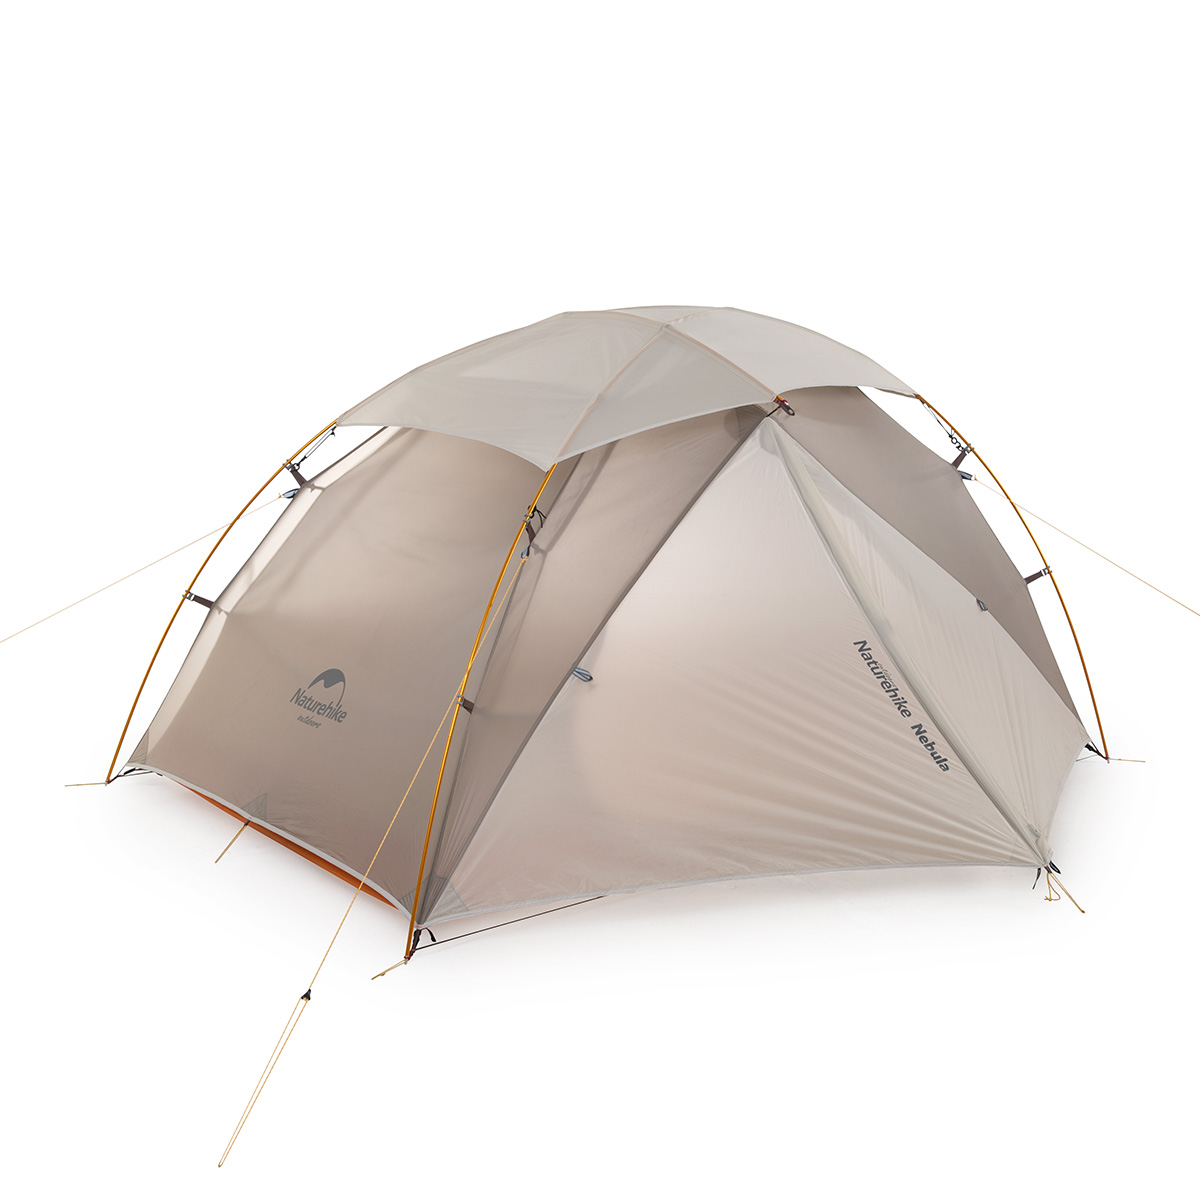 Naturehike Nebula 2 Ultralight Double Resident Tent 2 Man Camping Tent, 20D Nylon Silicone Outdoor 2 Person Camp Tents